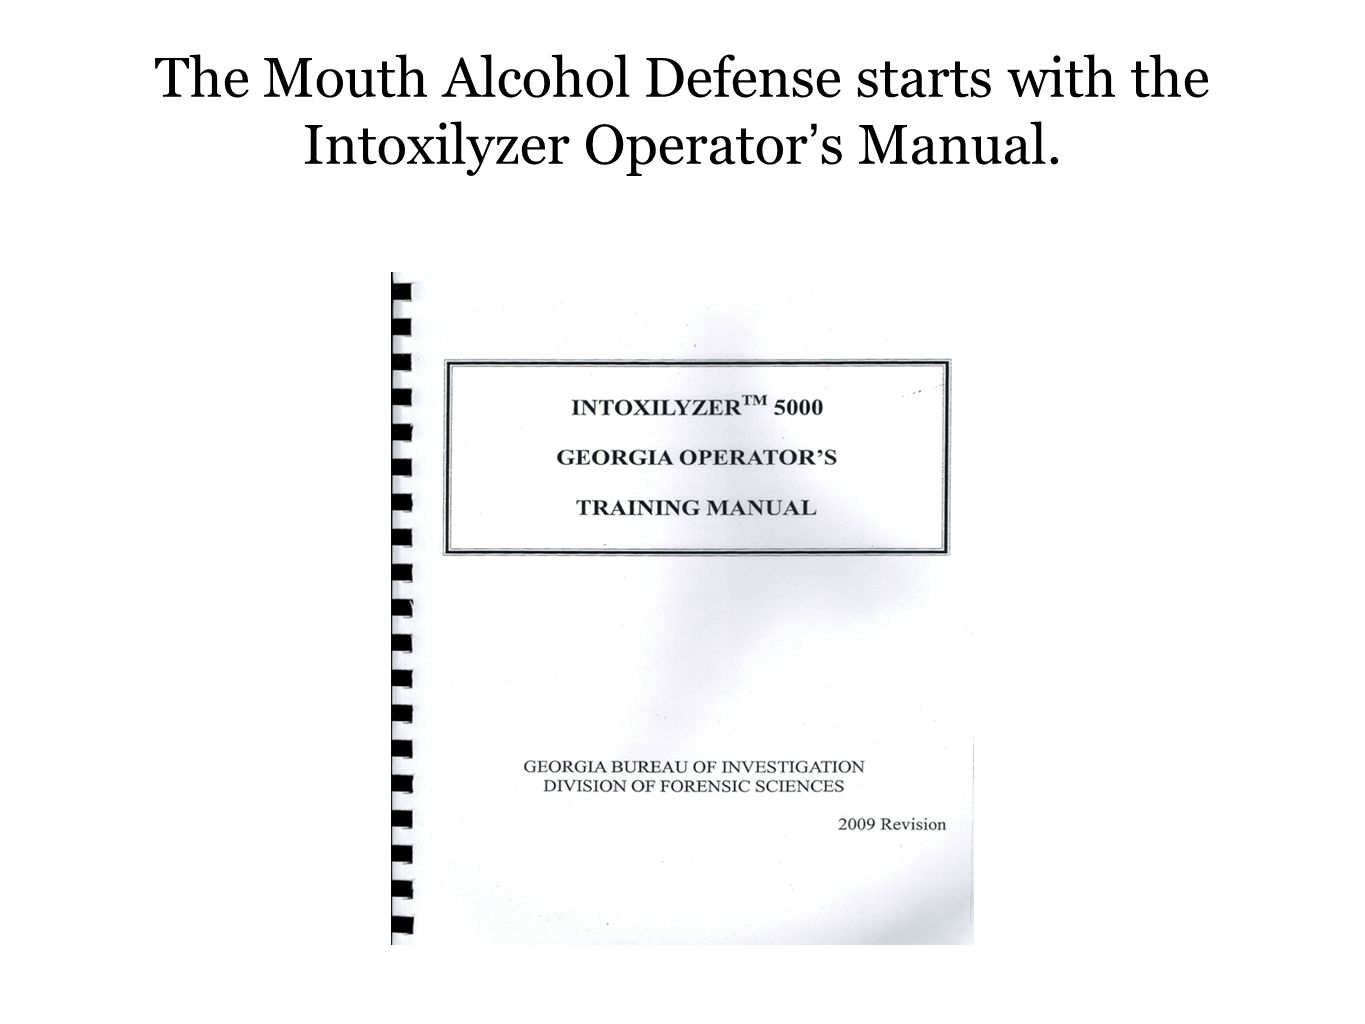 The Mouth Alcohol Defense starts with the Intoxilyzer Operator's Manual.